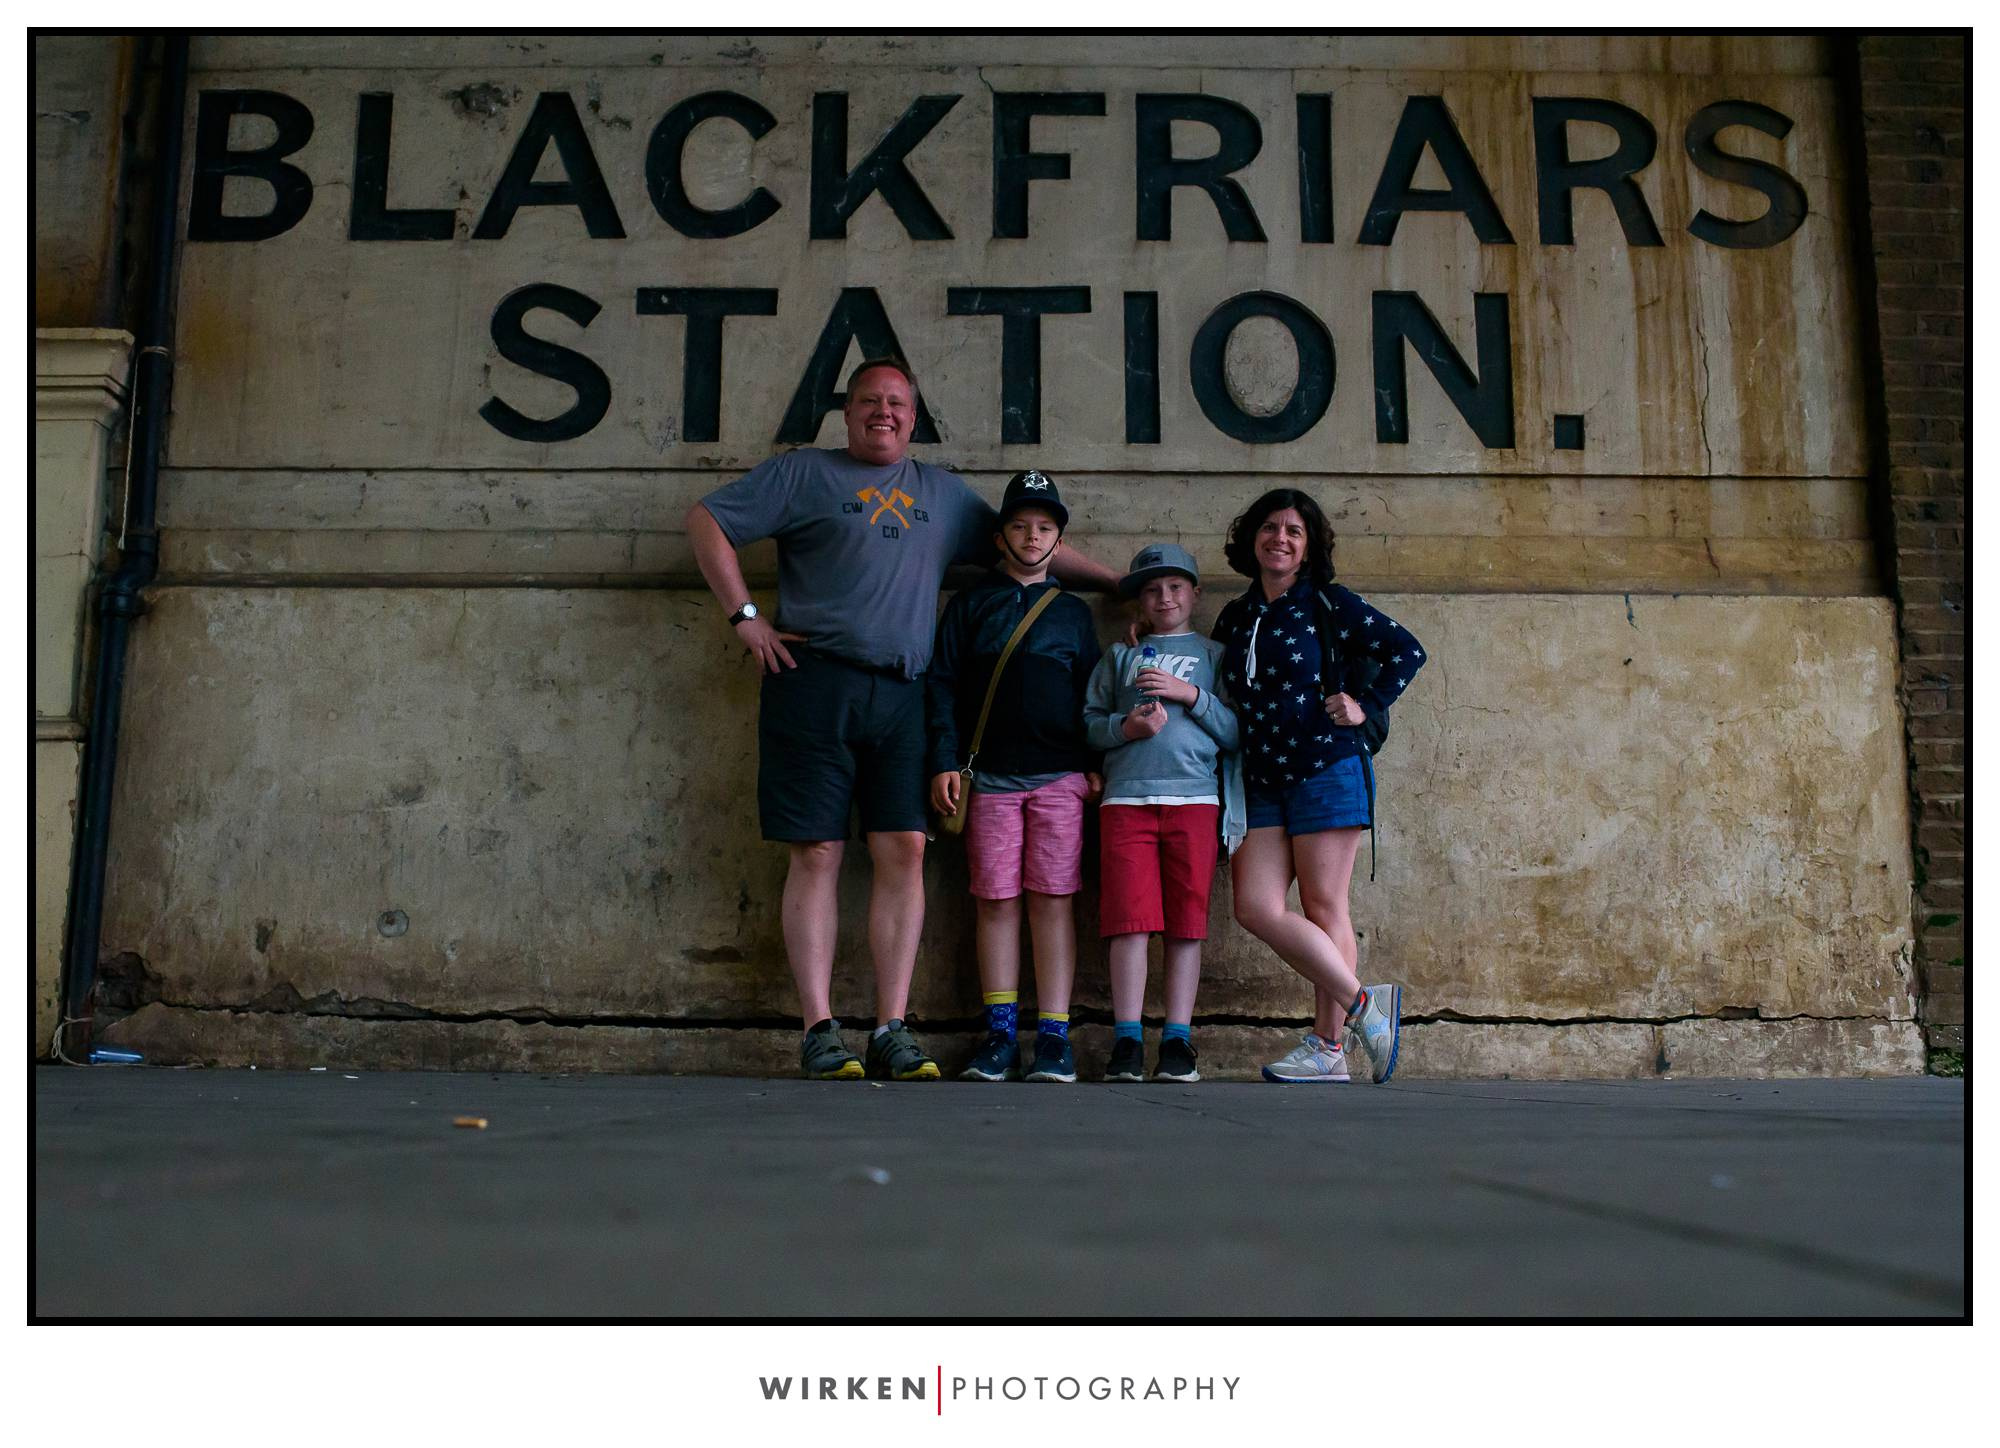 Blackfriars station family travel photography